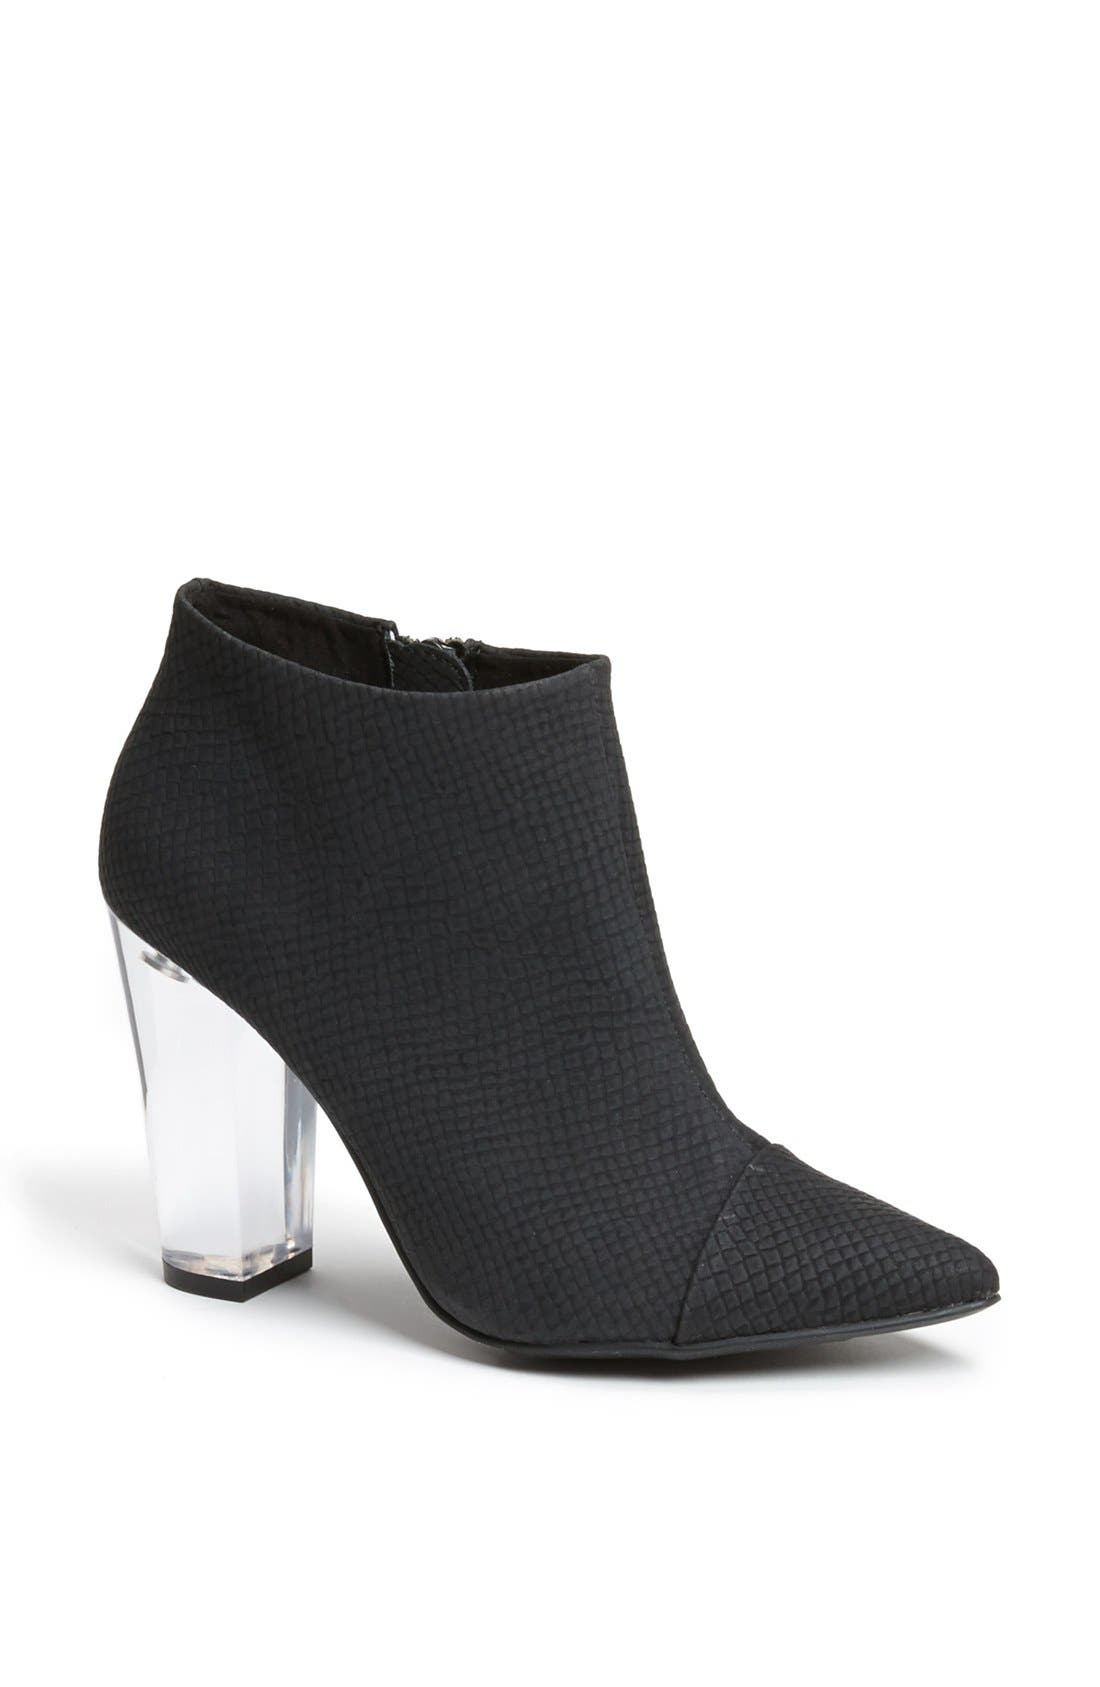 Alternate Image 1 Selected - Tildon 'Fleeting' Pointy Toe Bootie